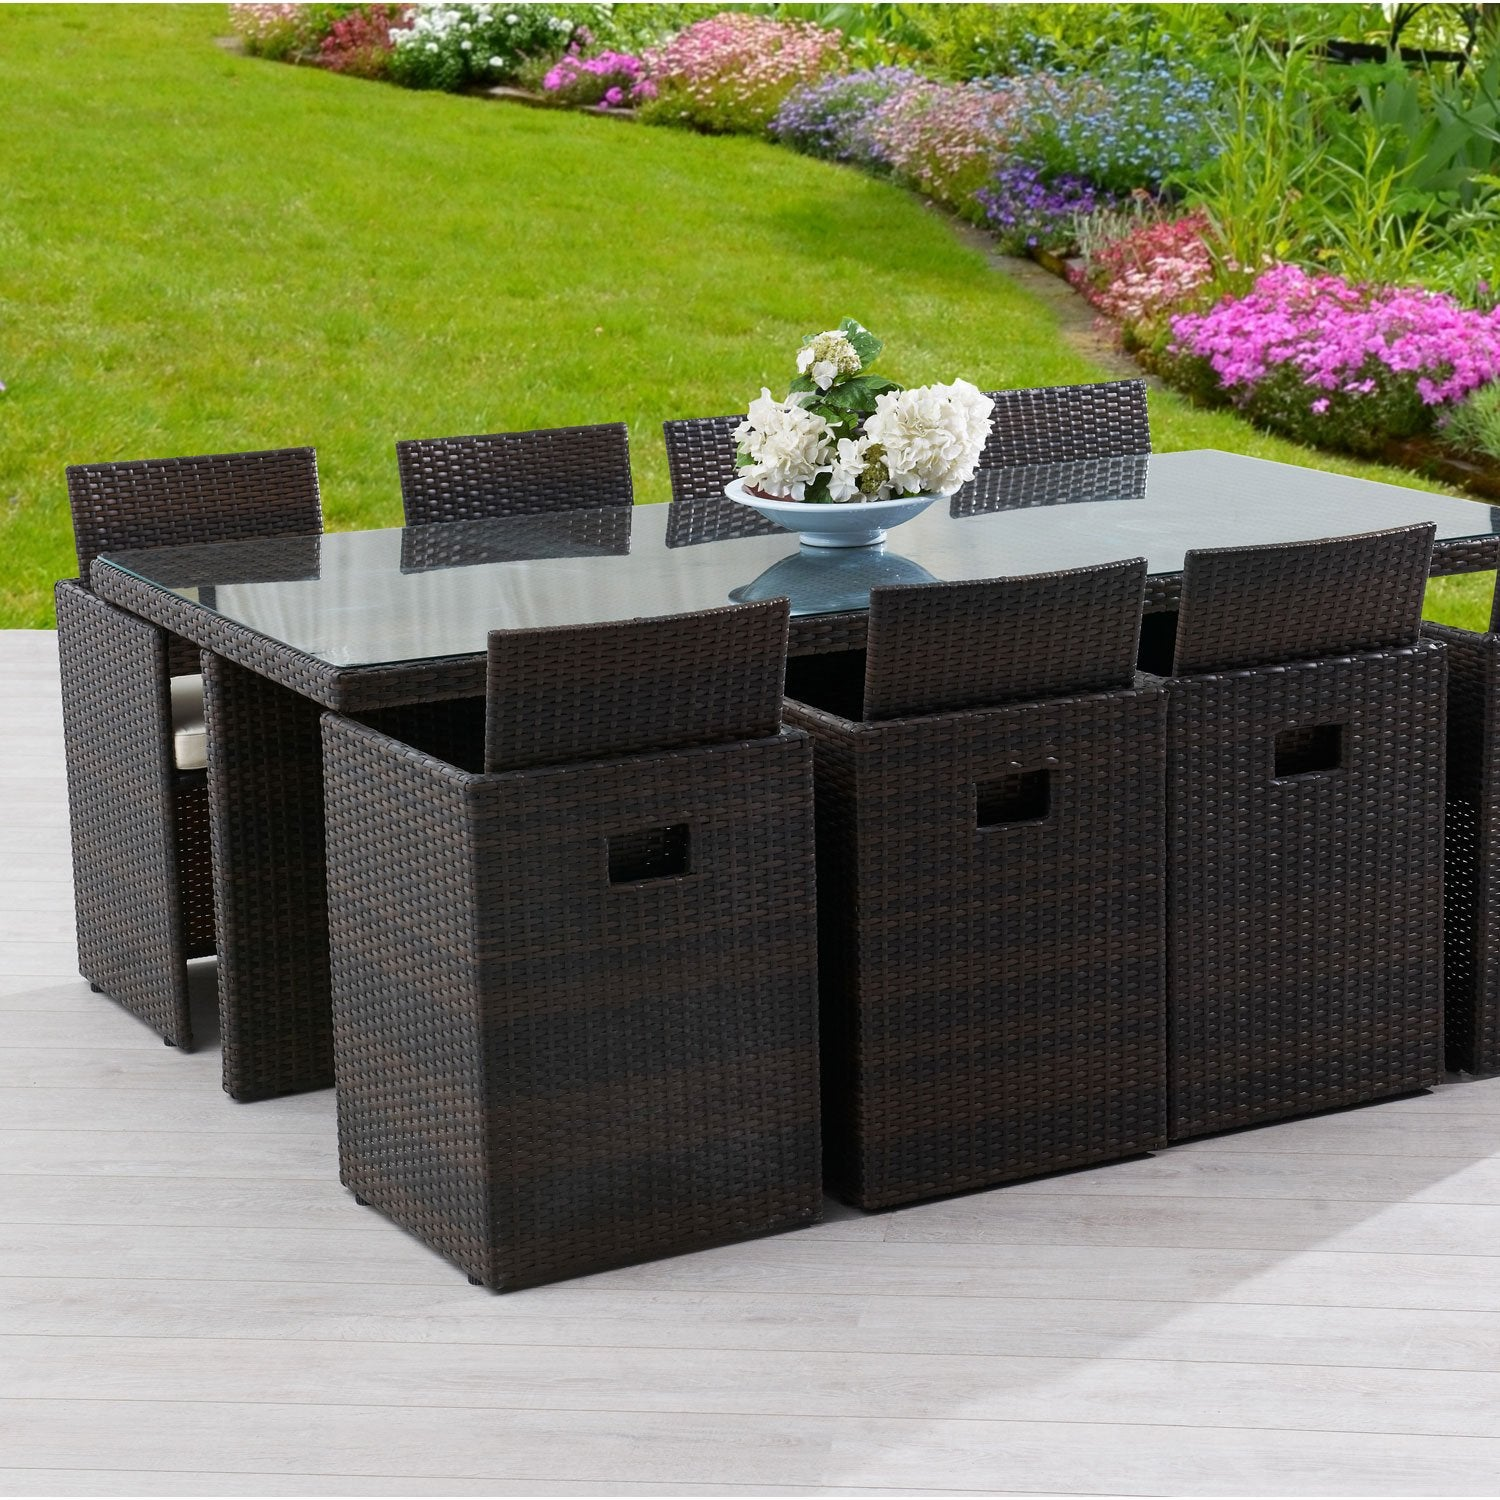 Salon de jardin encastrable r sine tress e marron 1 table - Table de jardin solde ...